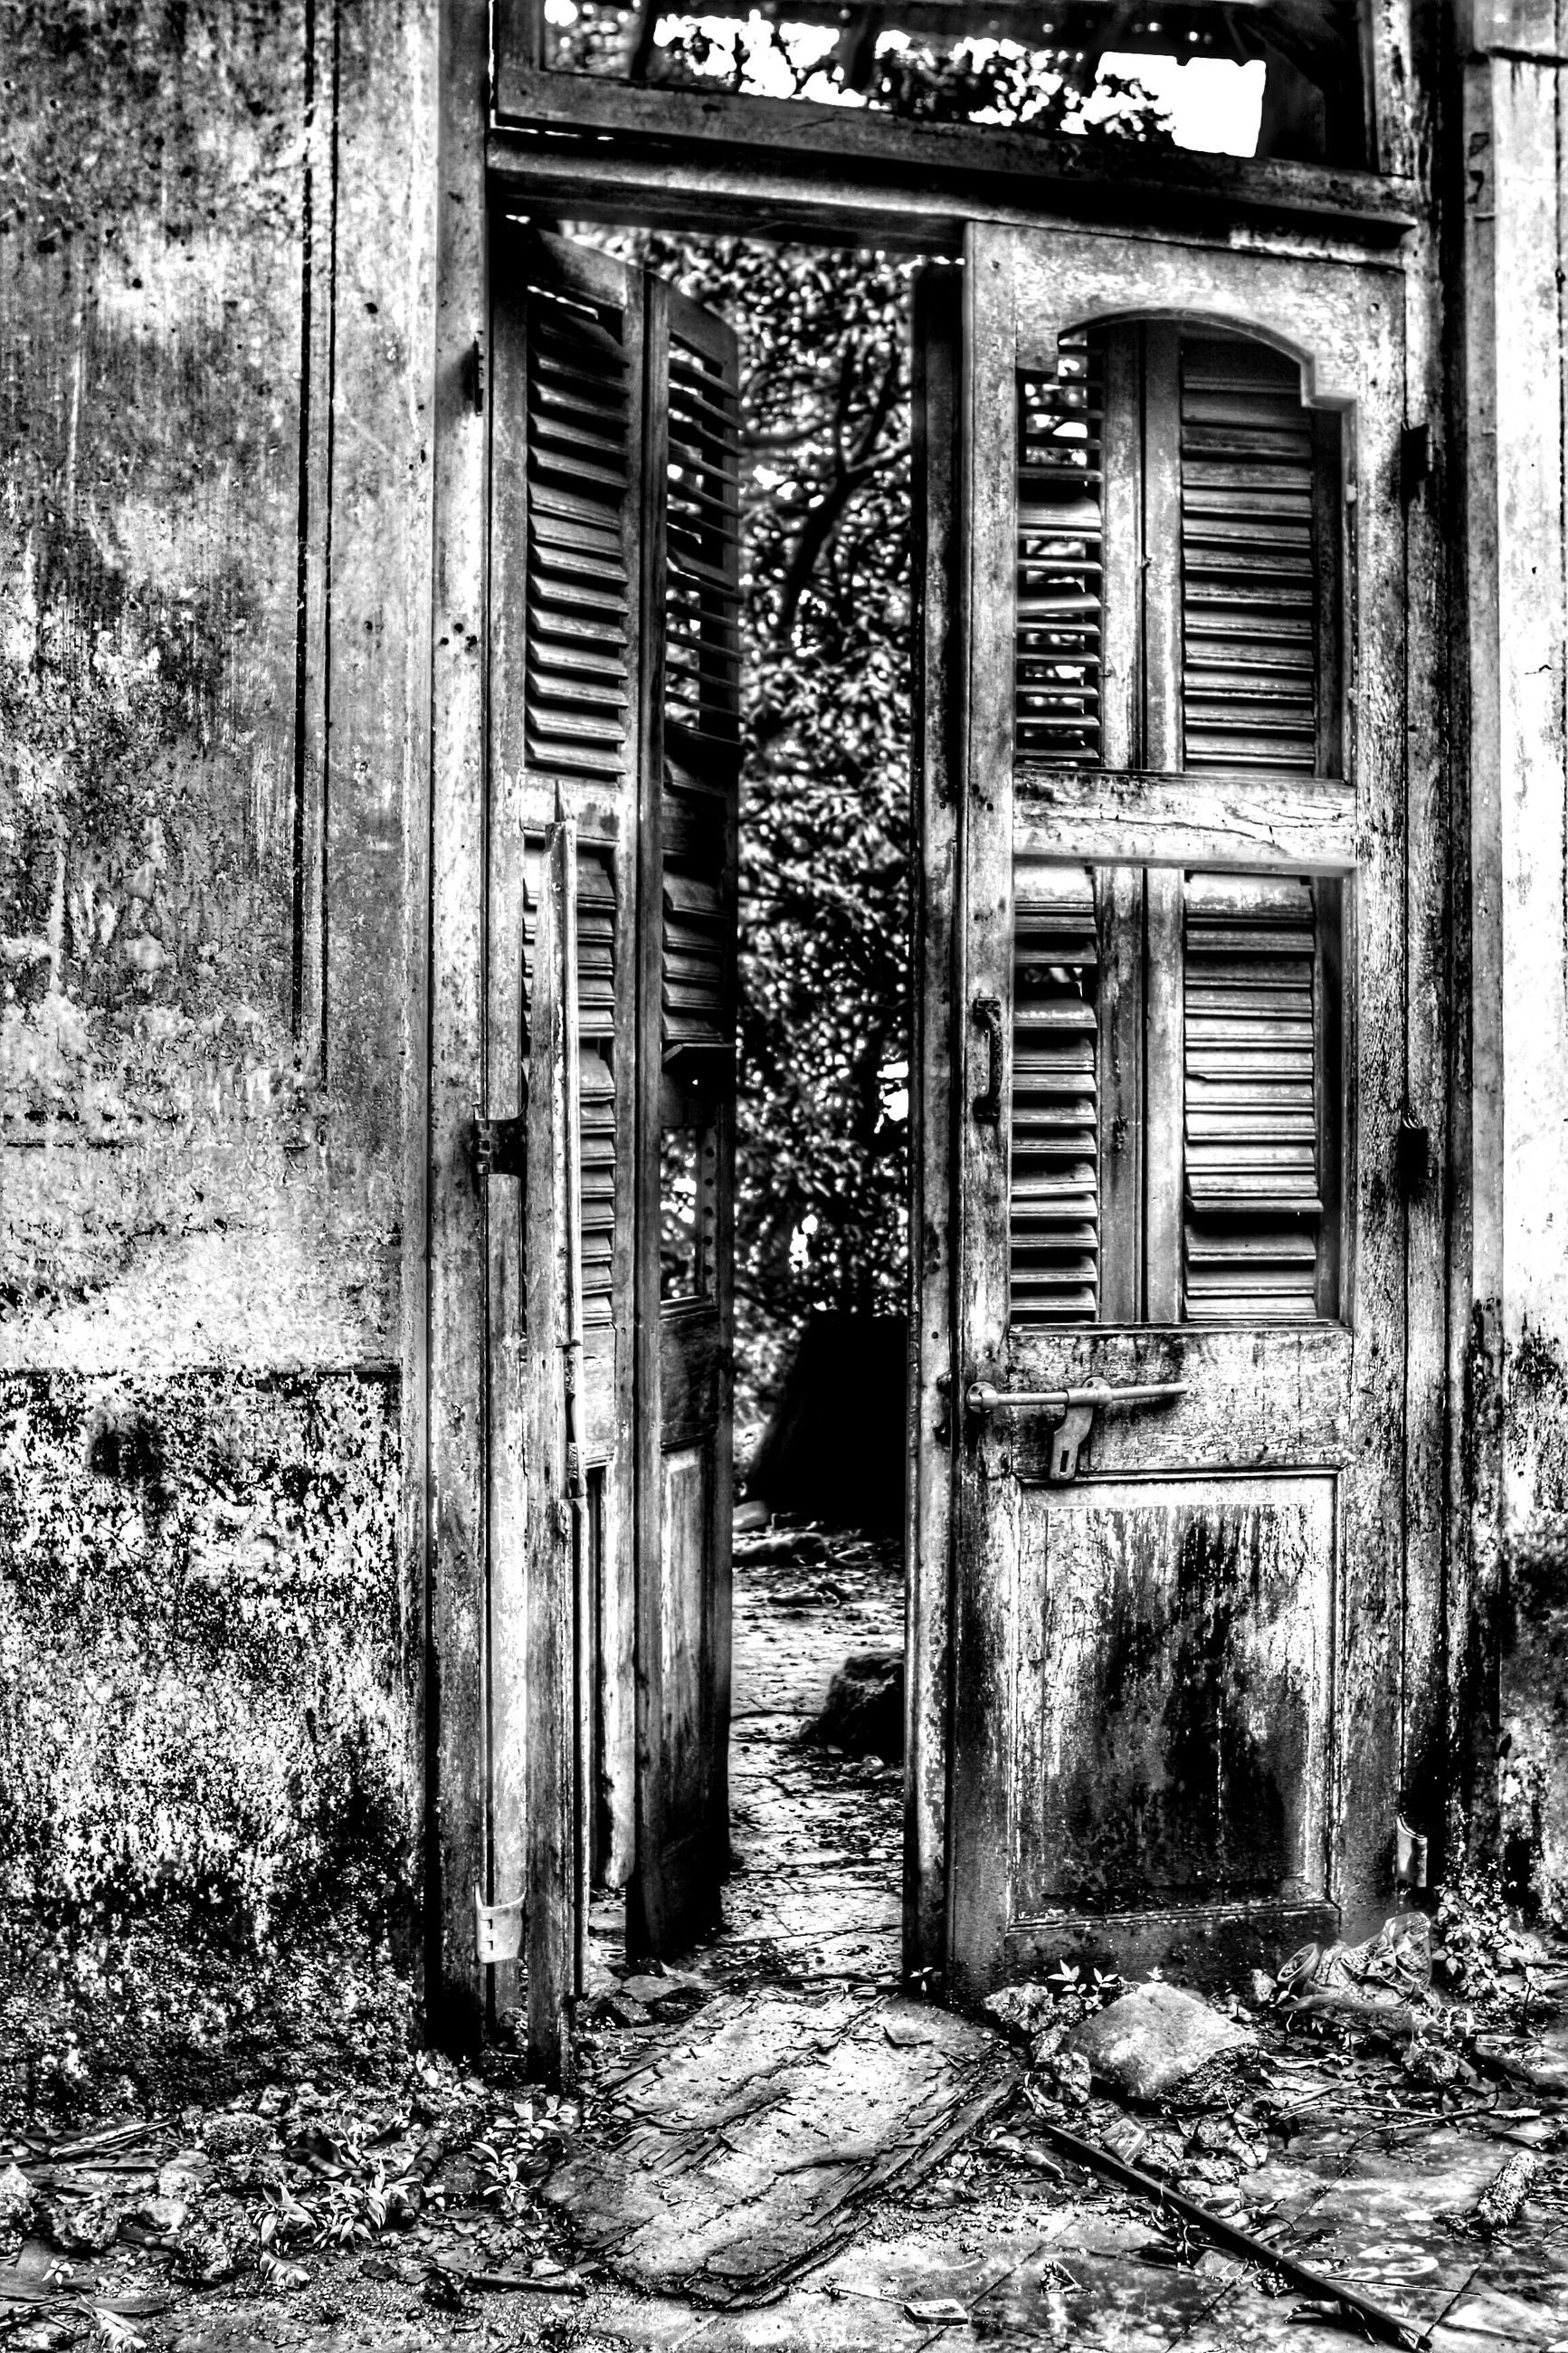 door, closed, built structure, building exterior, architecture, wood - material, house, old, entrance, window, abandoned, wooden, weathered, safety, wood, protection, obsolete, outdoors, day, security